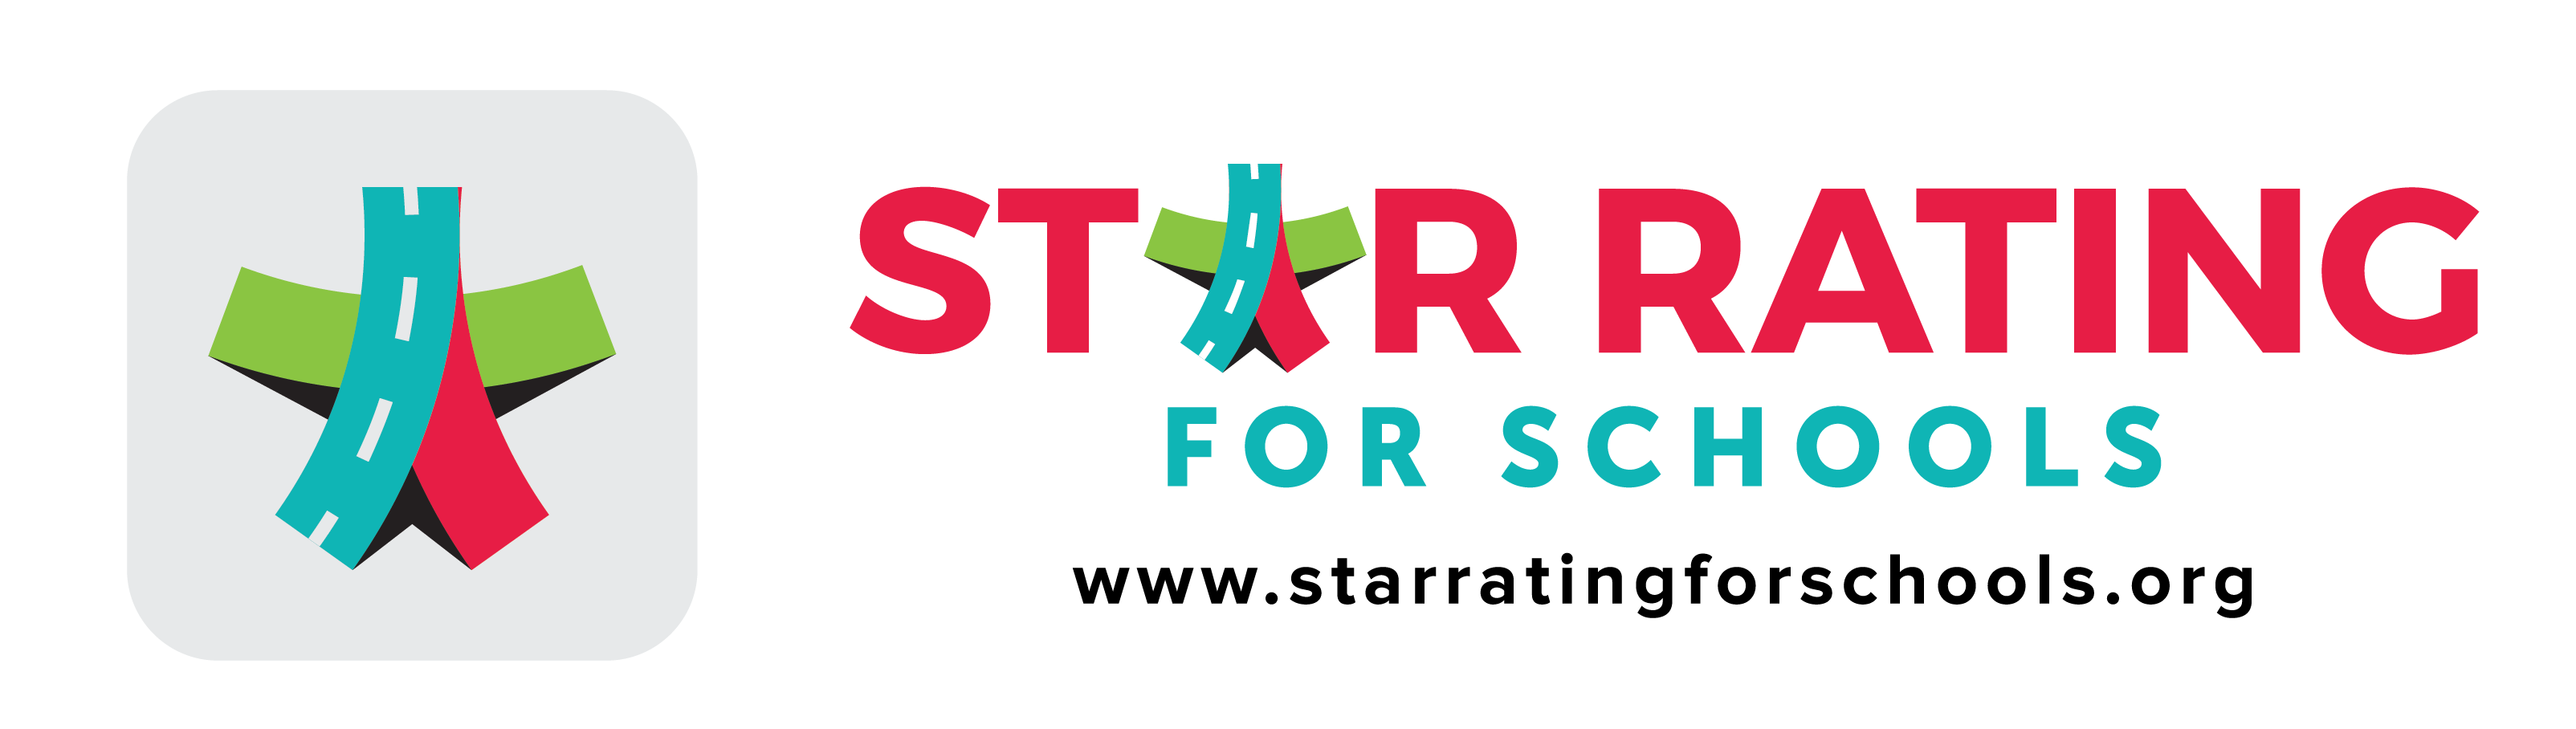 Star Rating 4 Schools